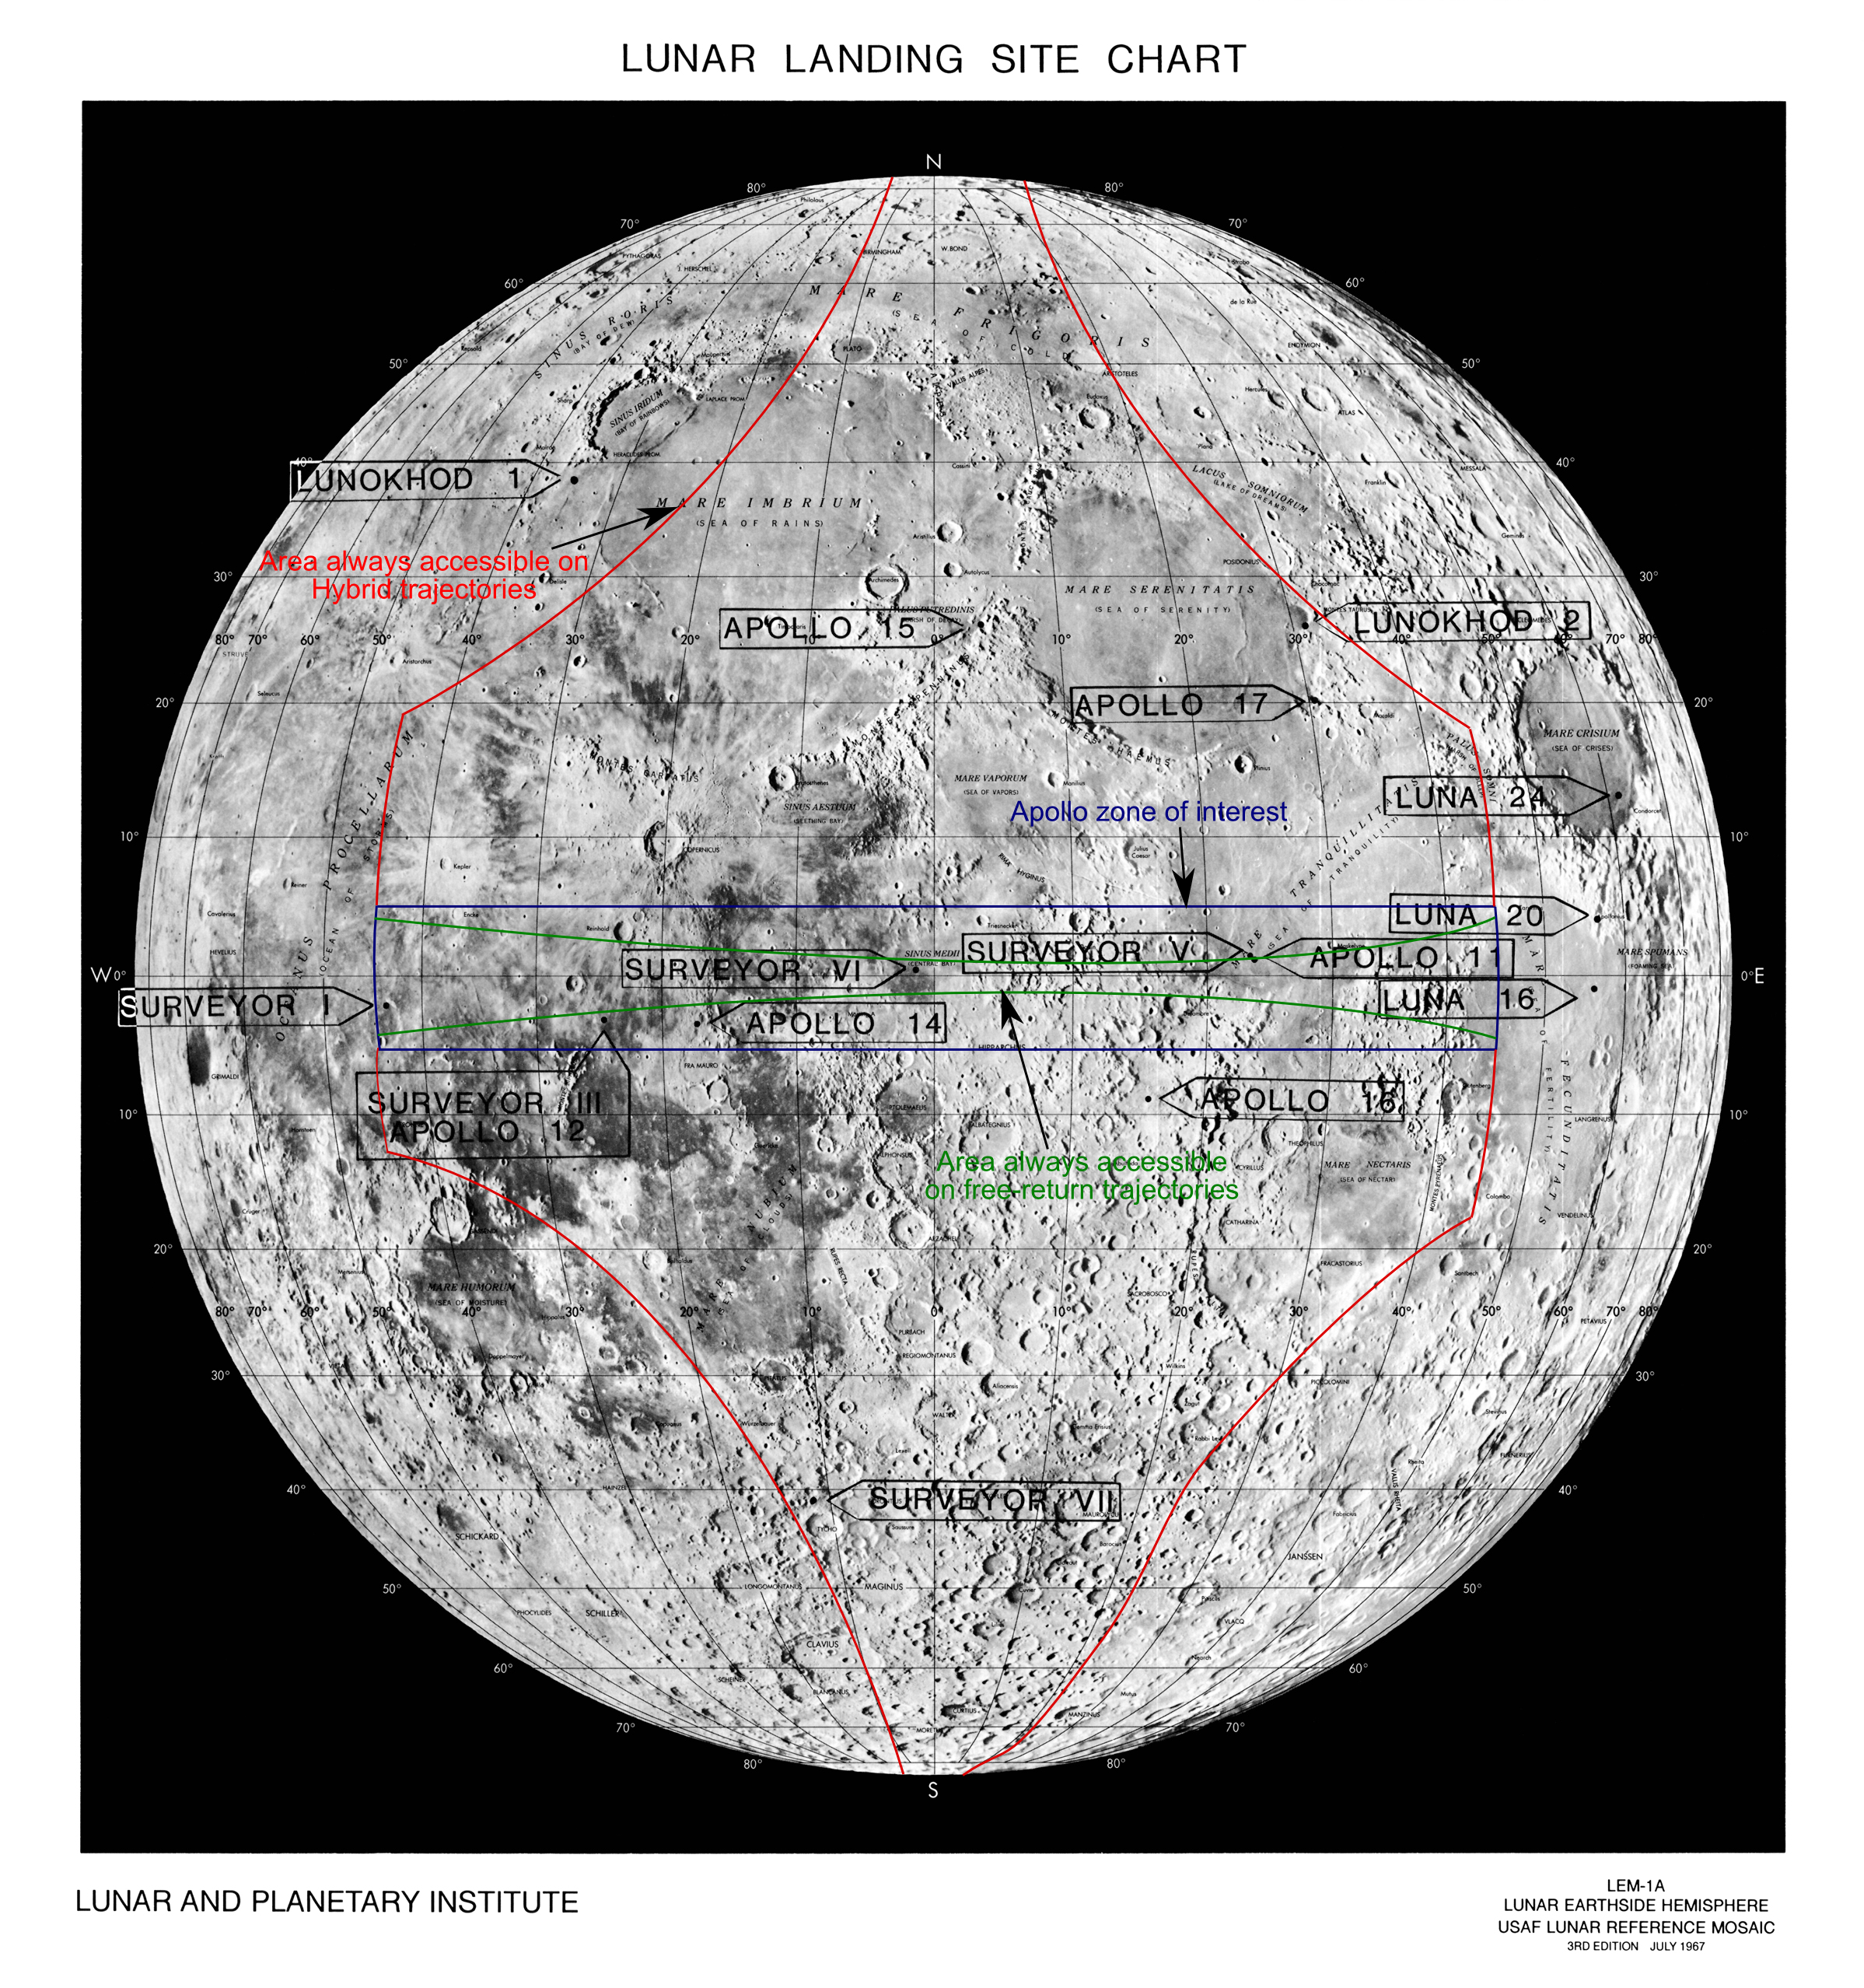 History of the lunar charts